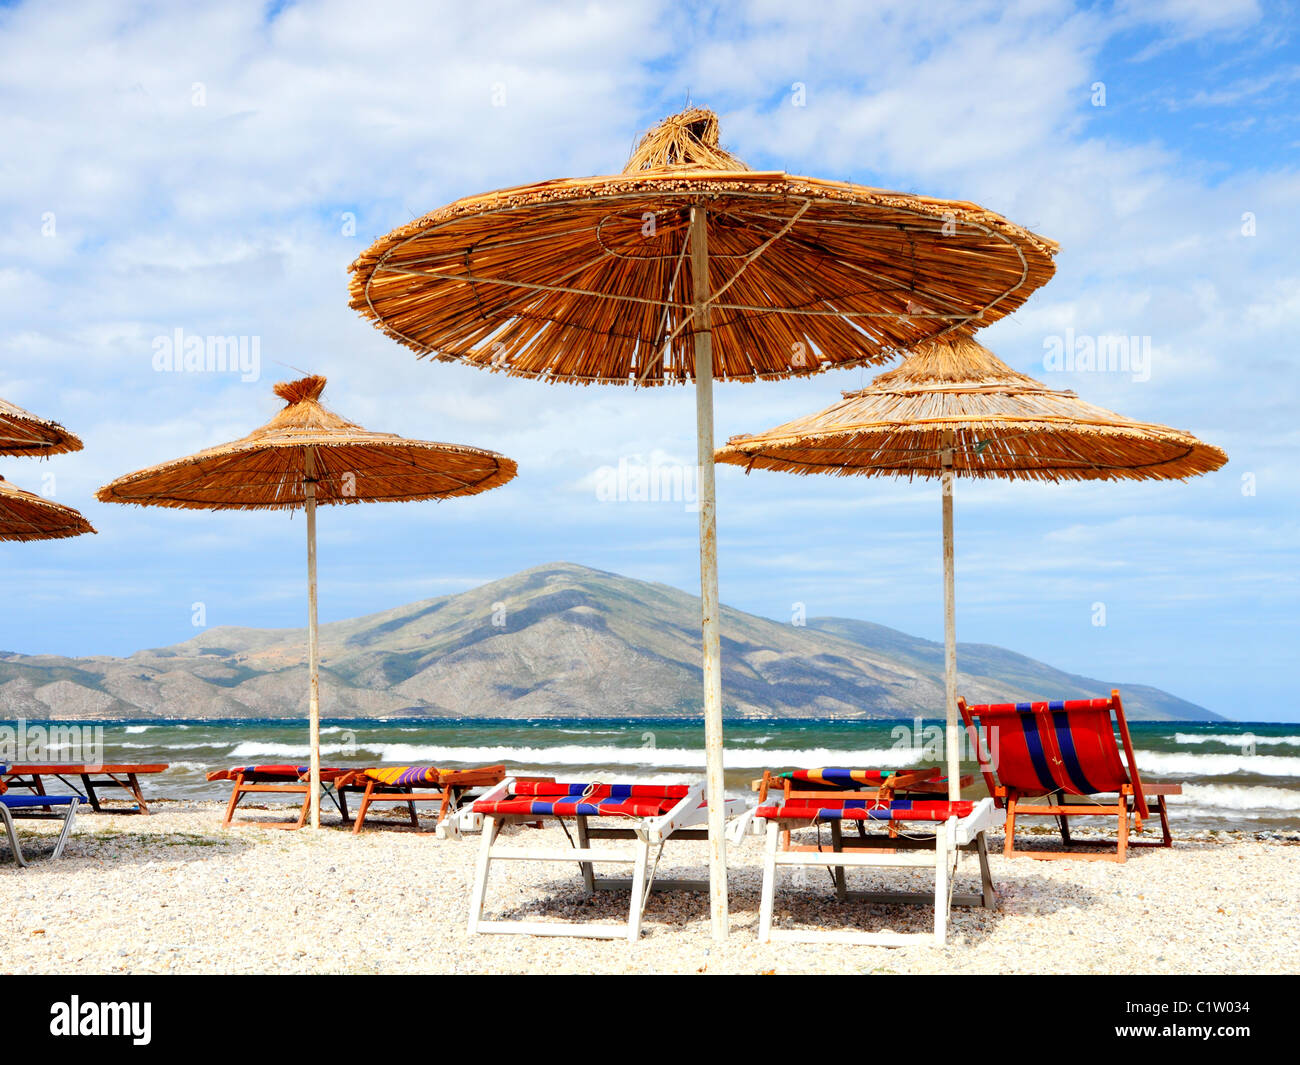 deserted beach couches and straw parasols ready for customers on a summer day on the adriatic coast of Albania - Stock Image